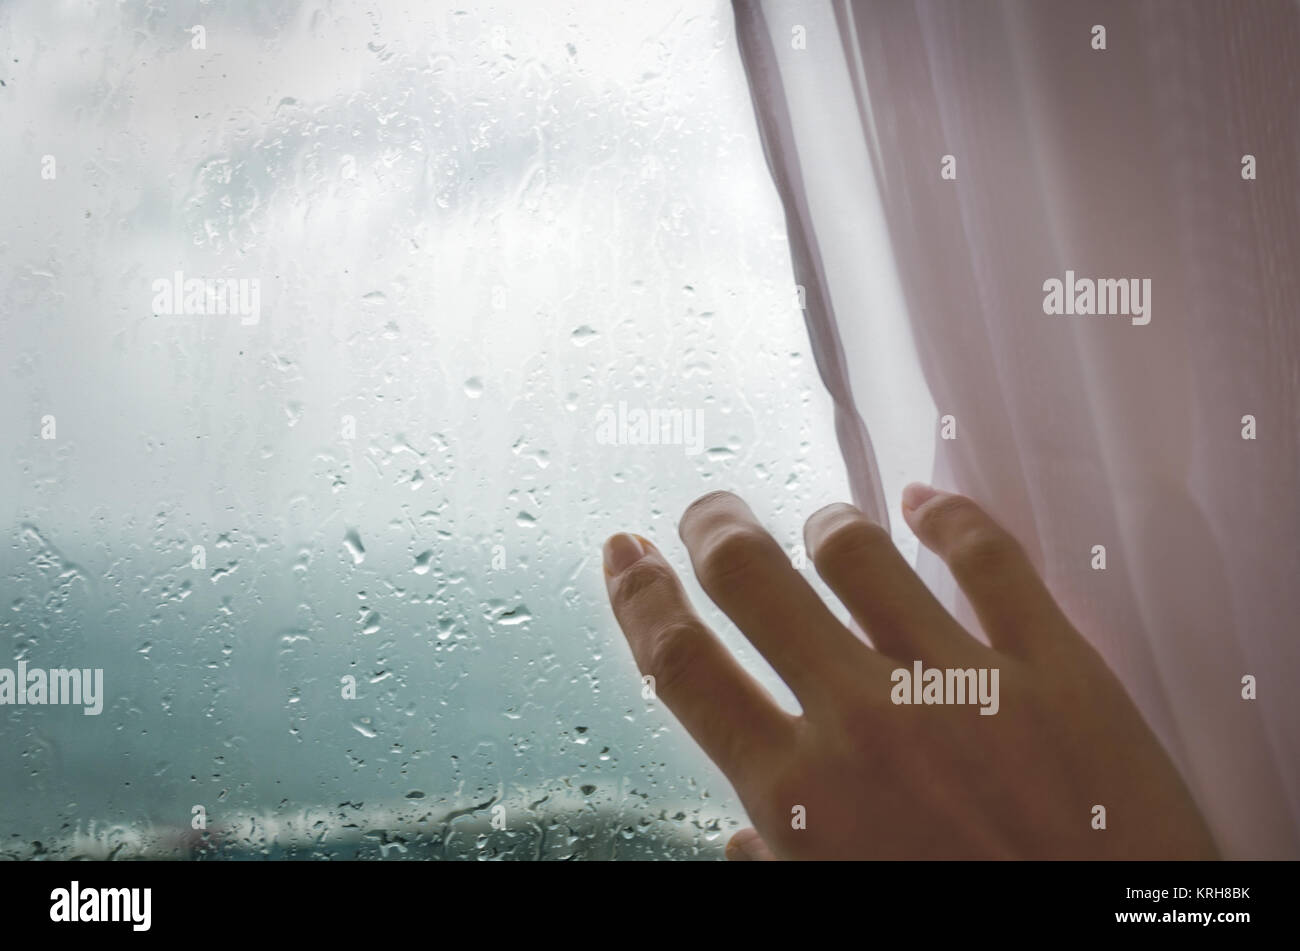 Rainy weather - a woman's hand pulls the blind from the rainy window. - Stock Image